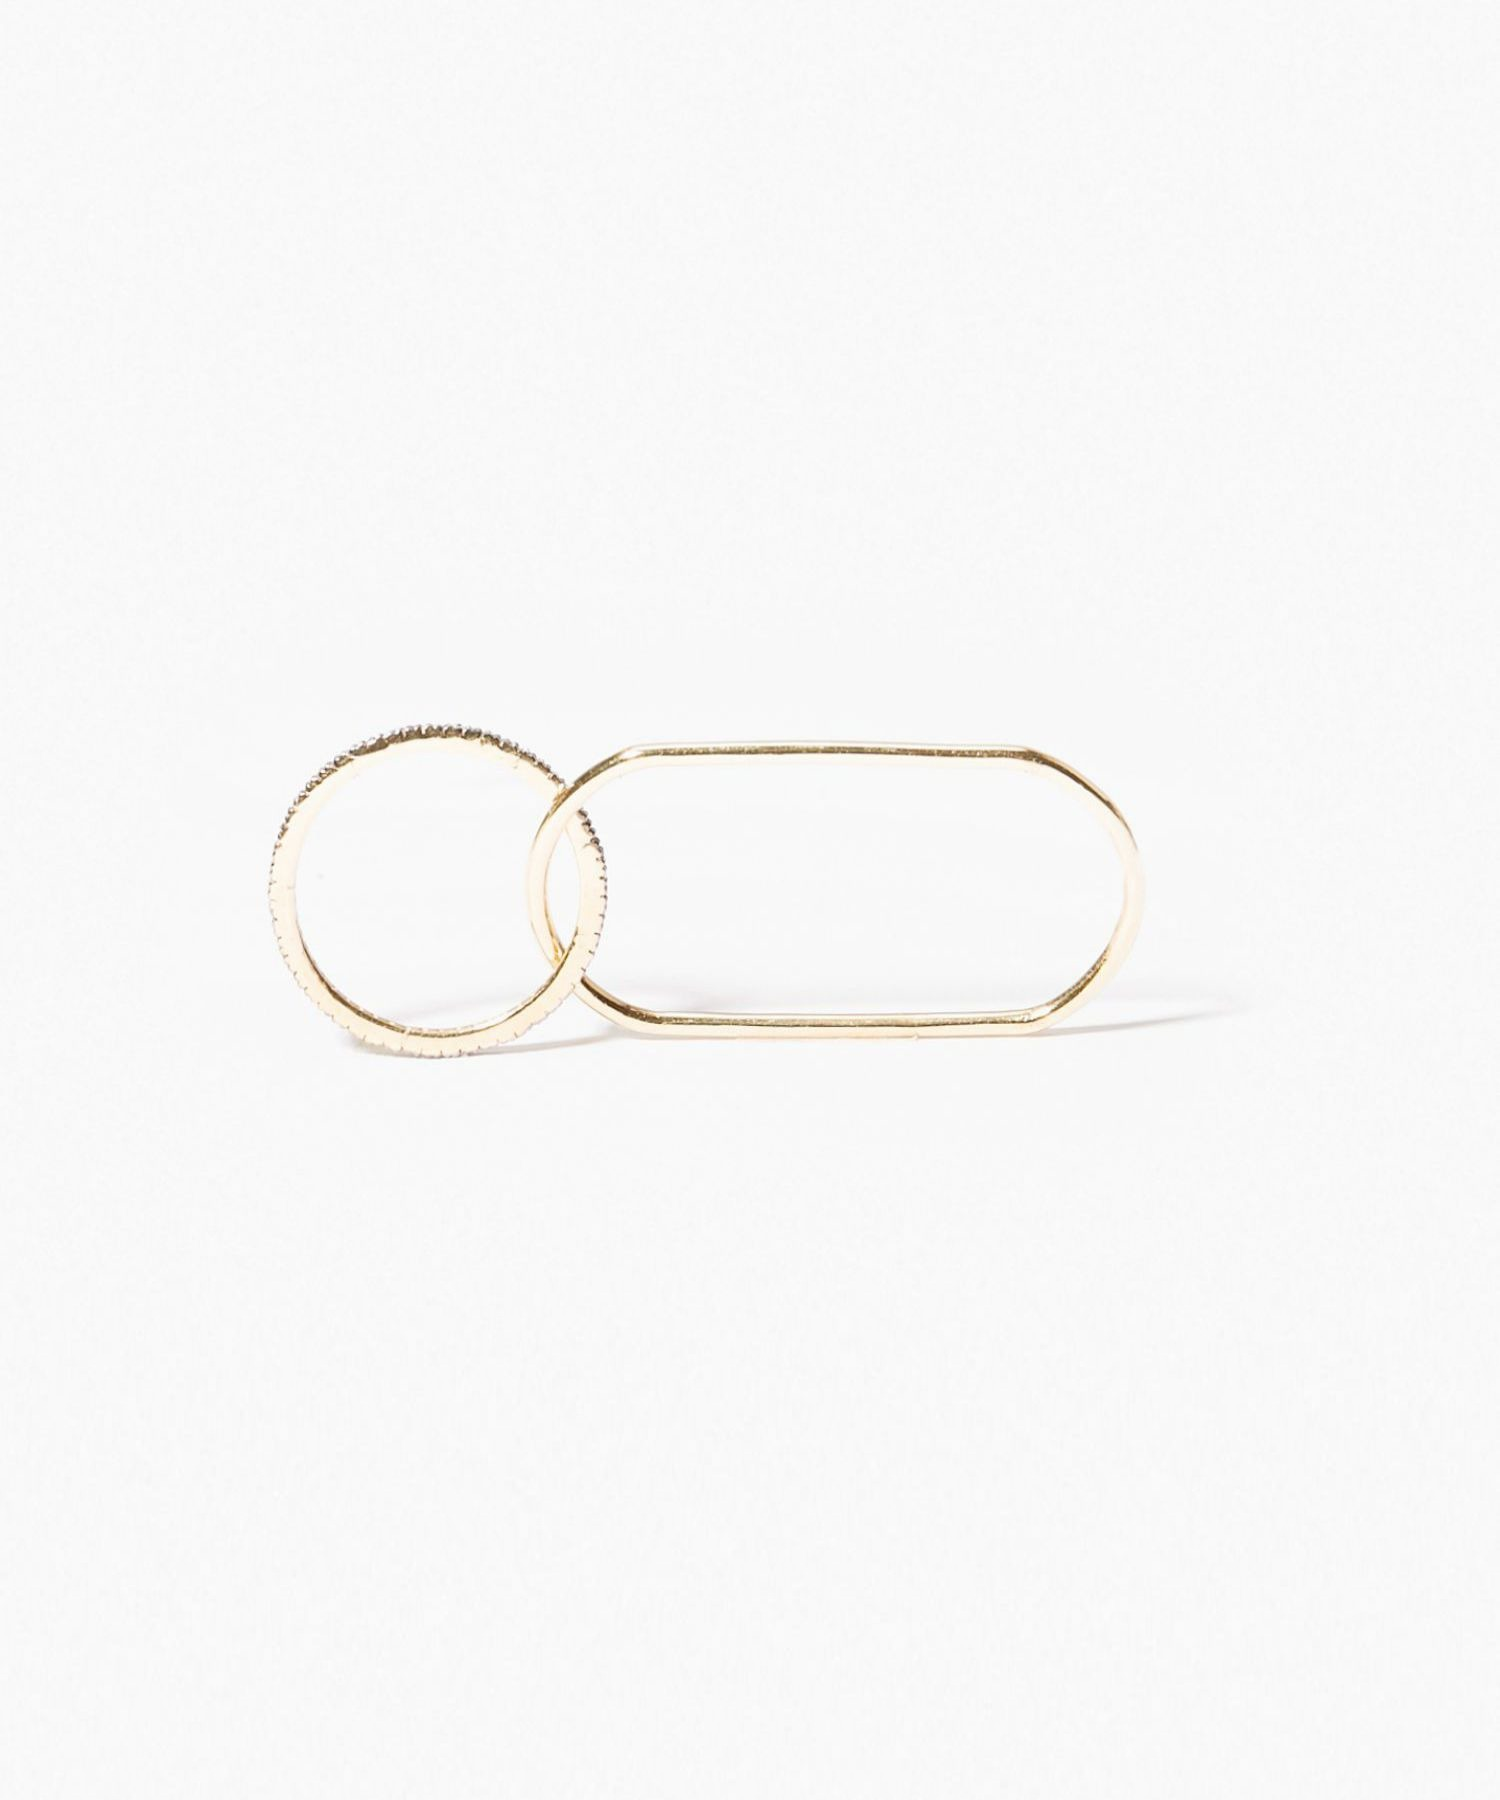 [gaia] pave link duble finger ring